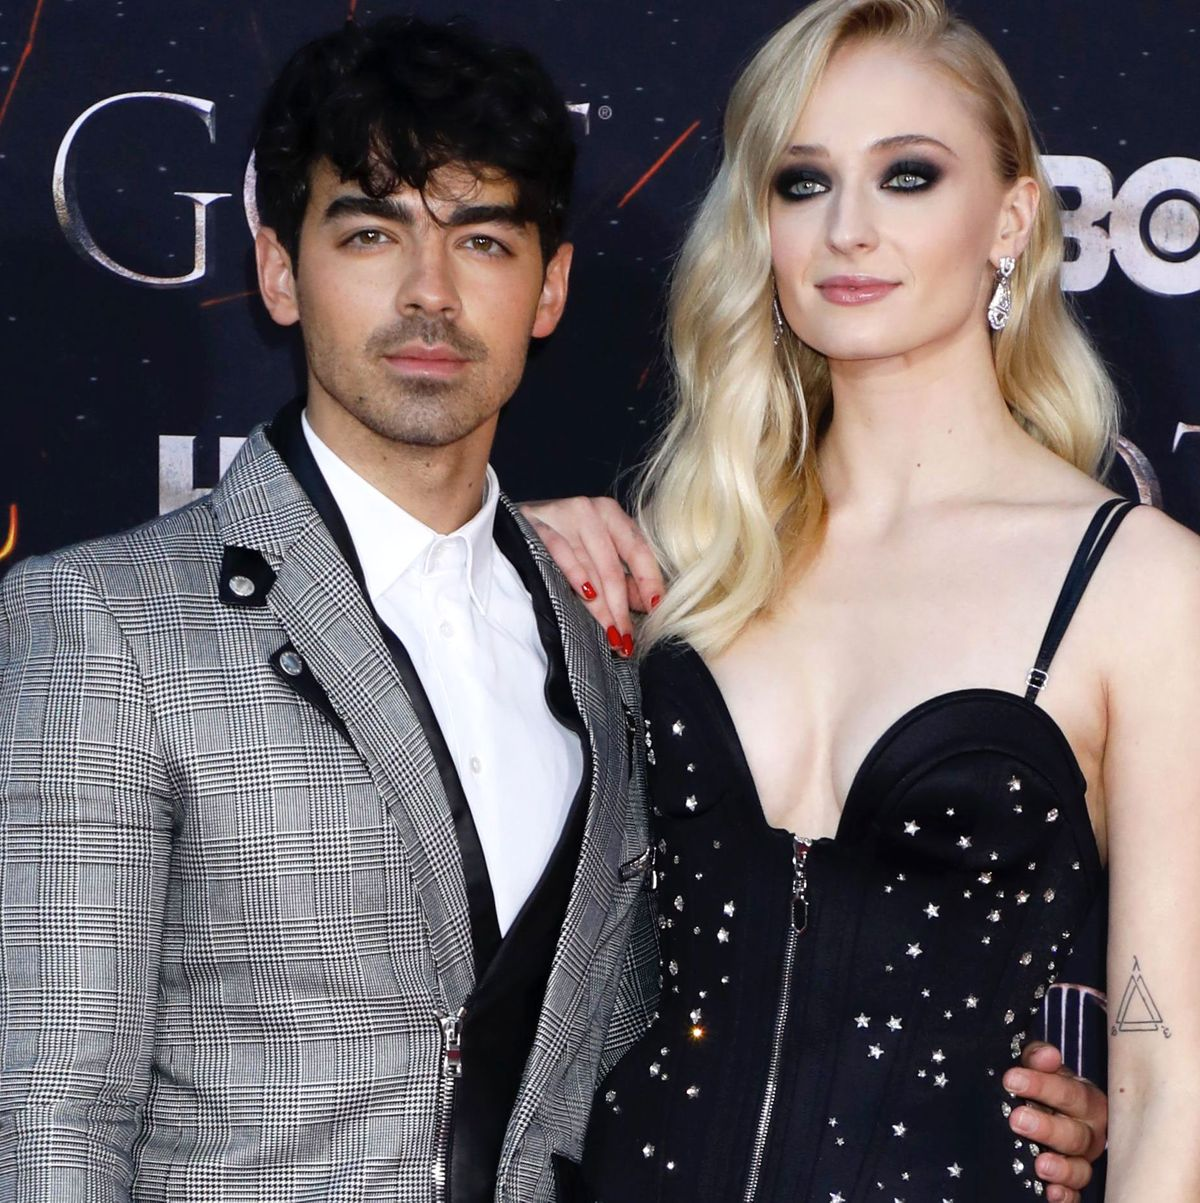 Joe Jonas And Sophie Turner Got Married In Vegas